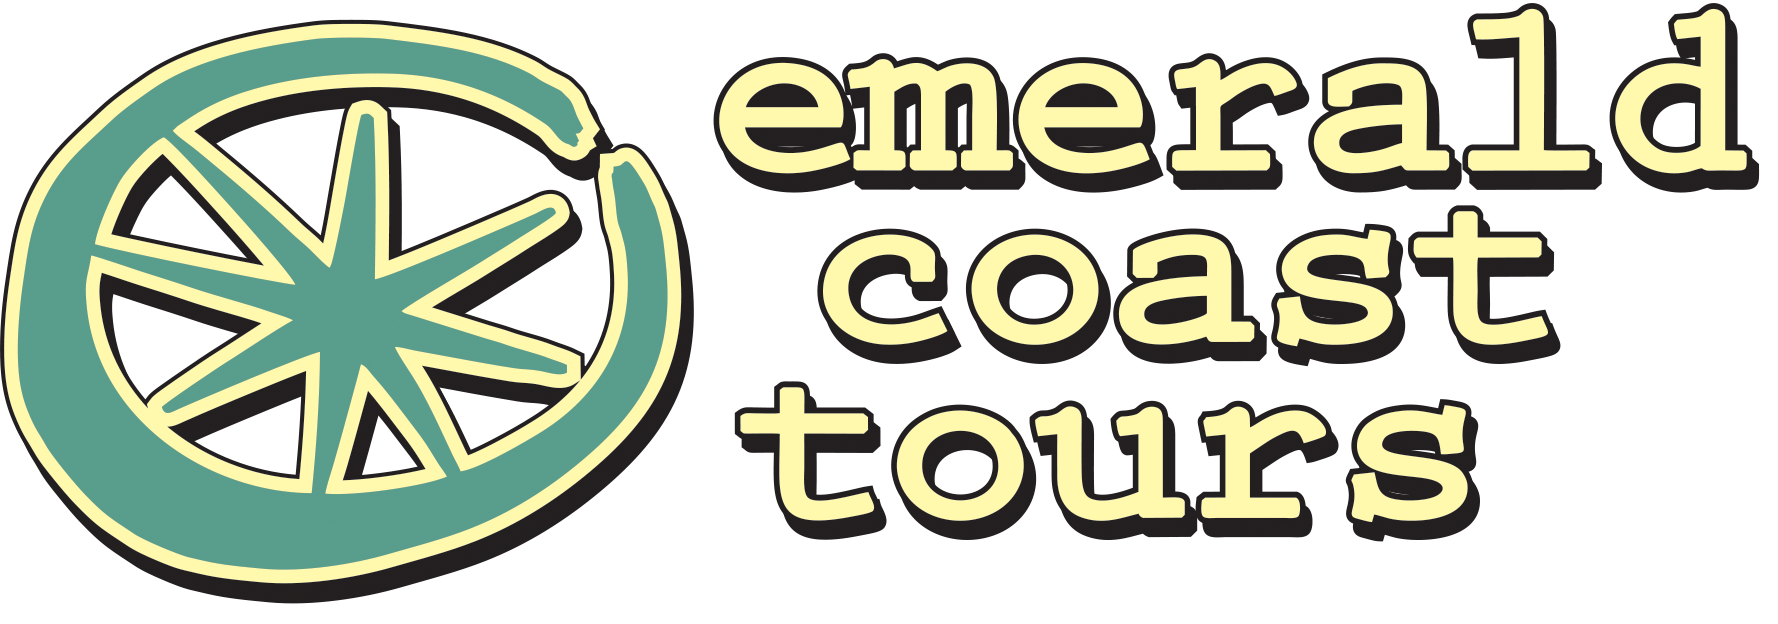 Emerald Coast Tours - Things to do in Pensacola